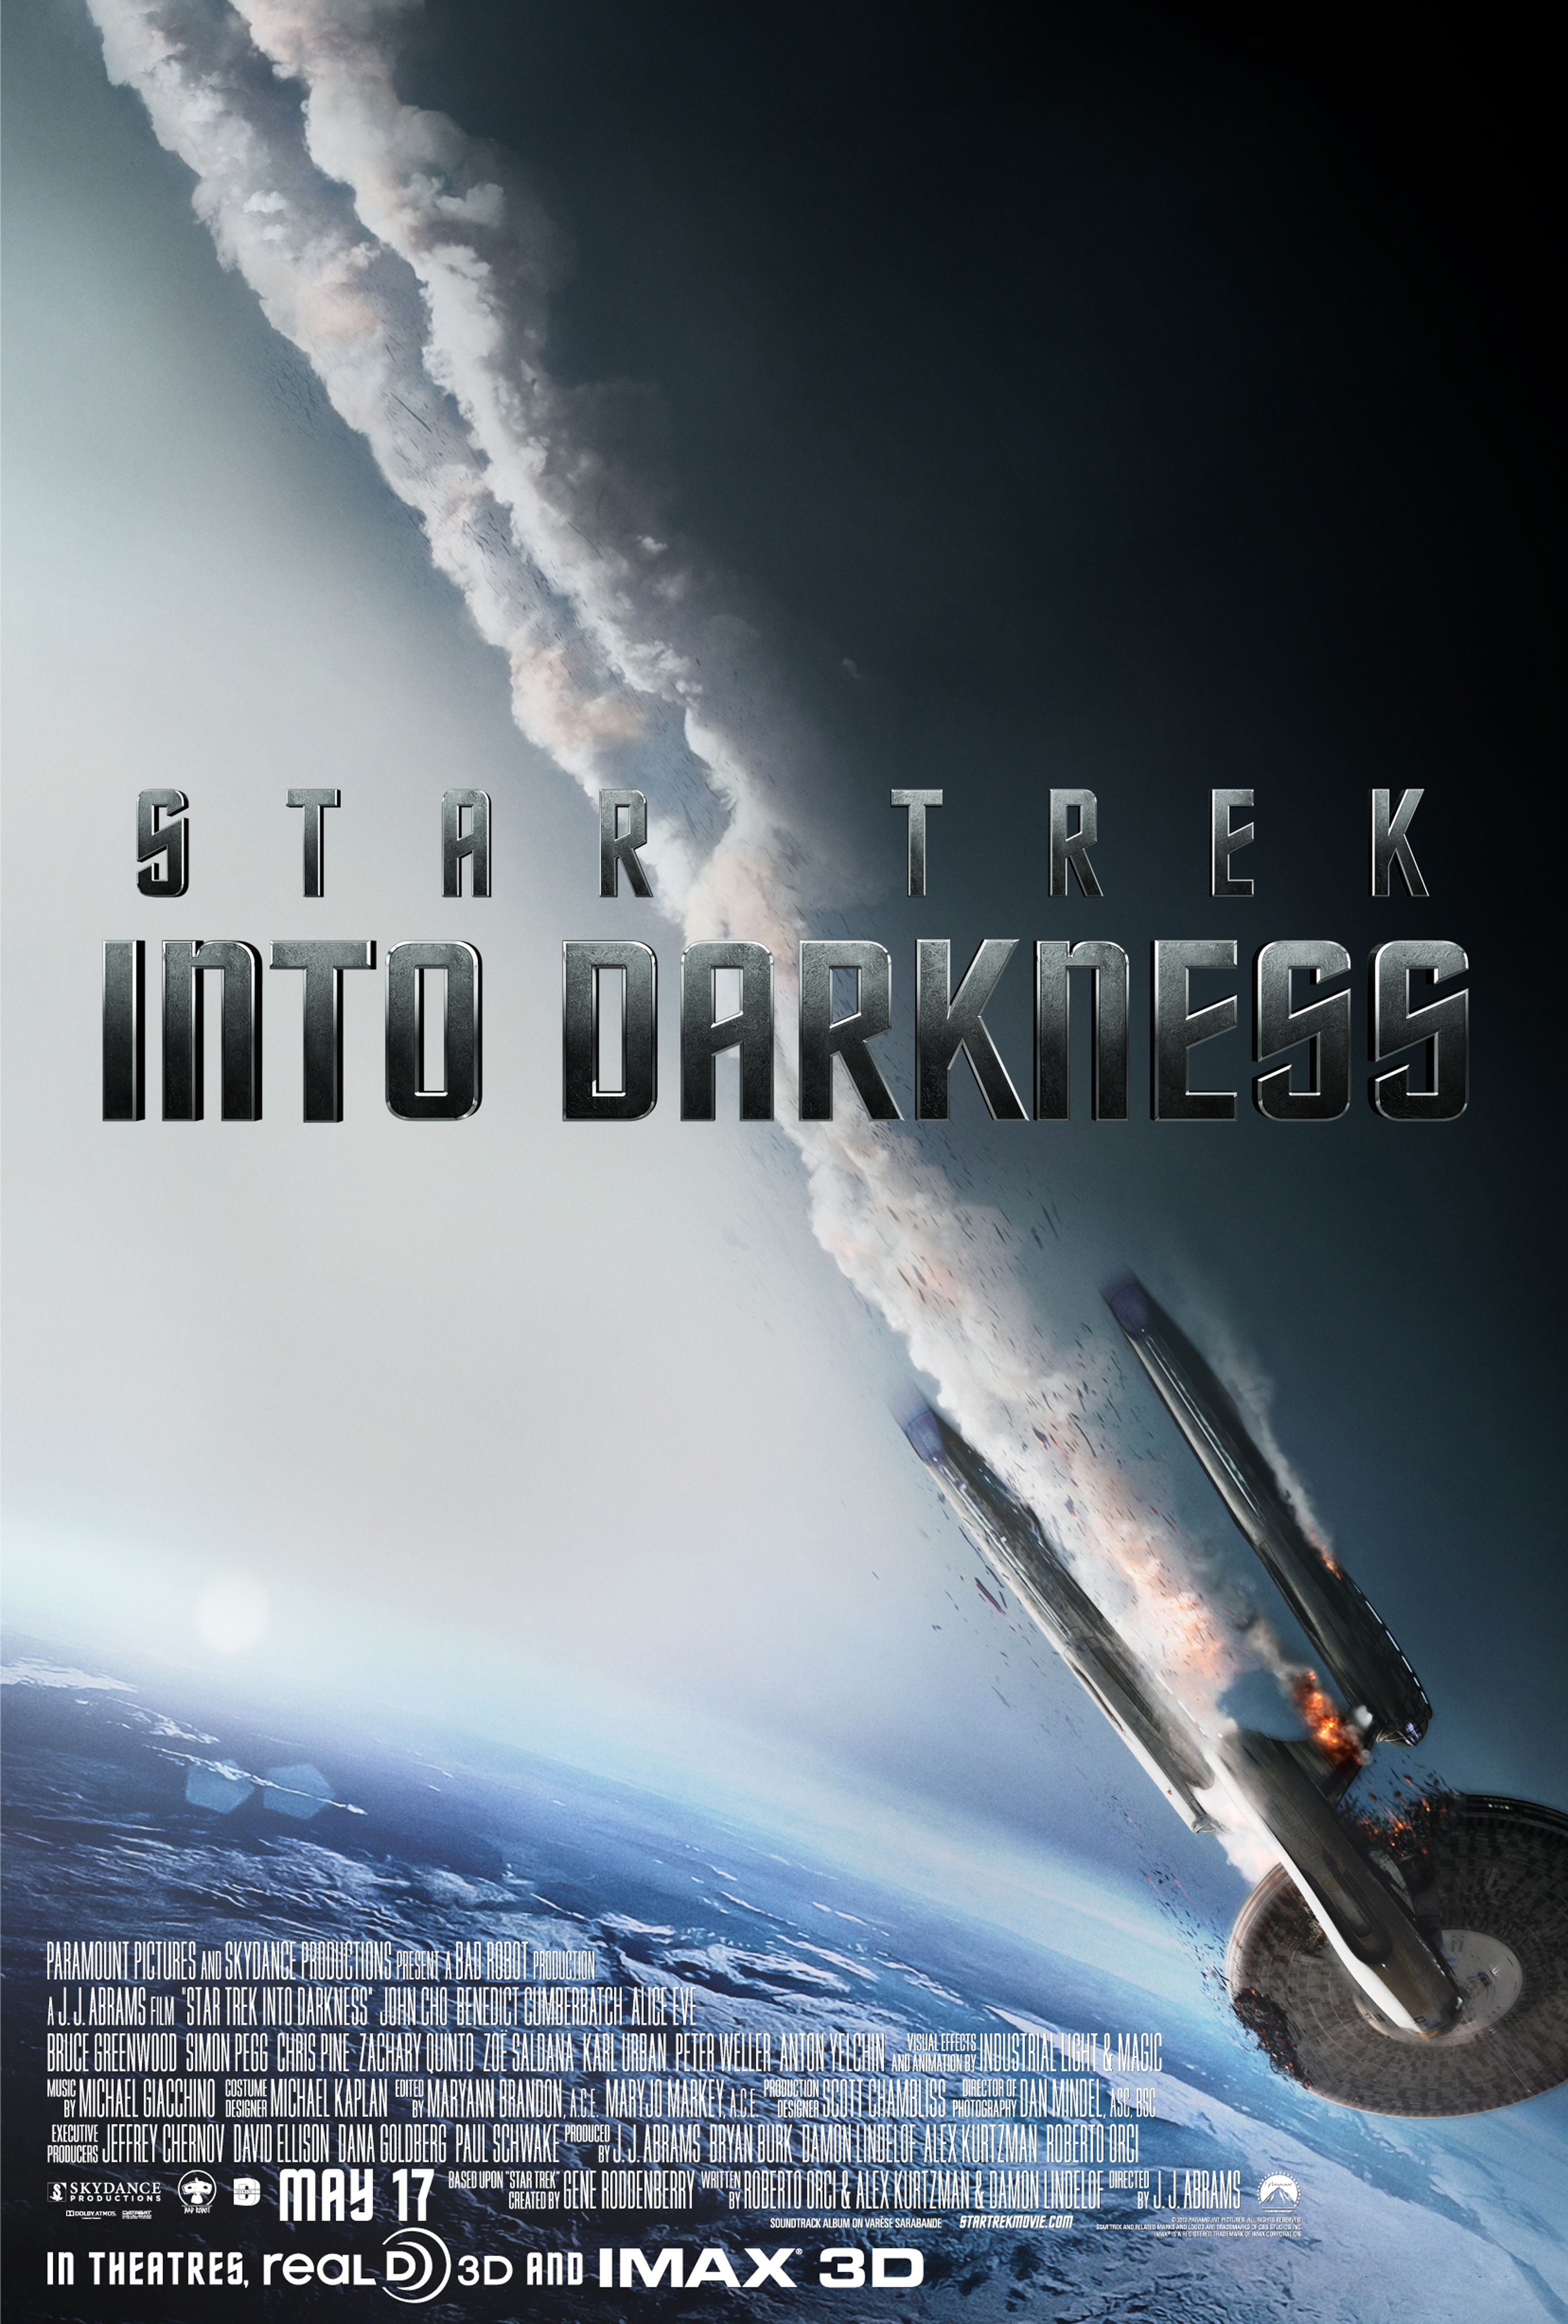 Star Trek Into Darkness - Movie Poster #1 (Original)